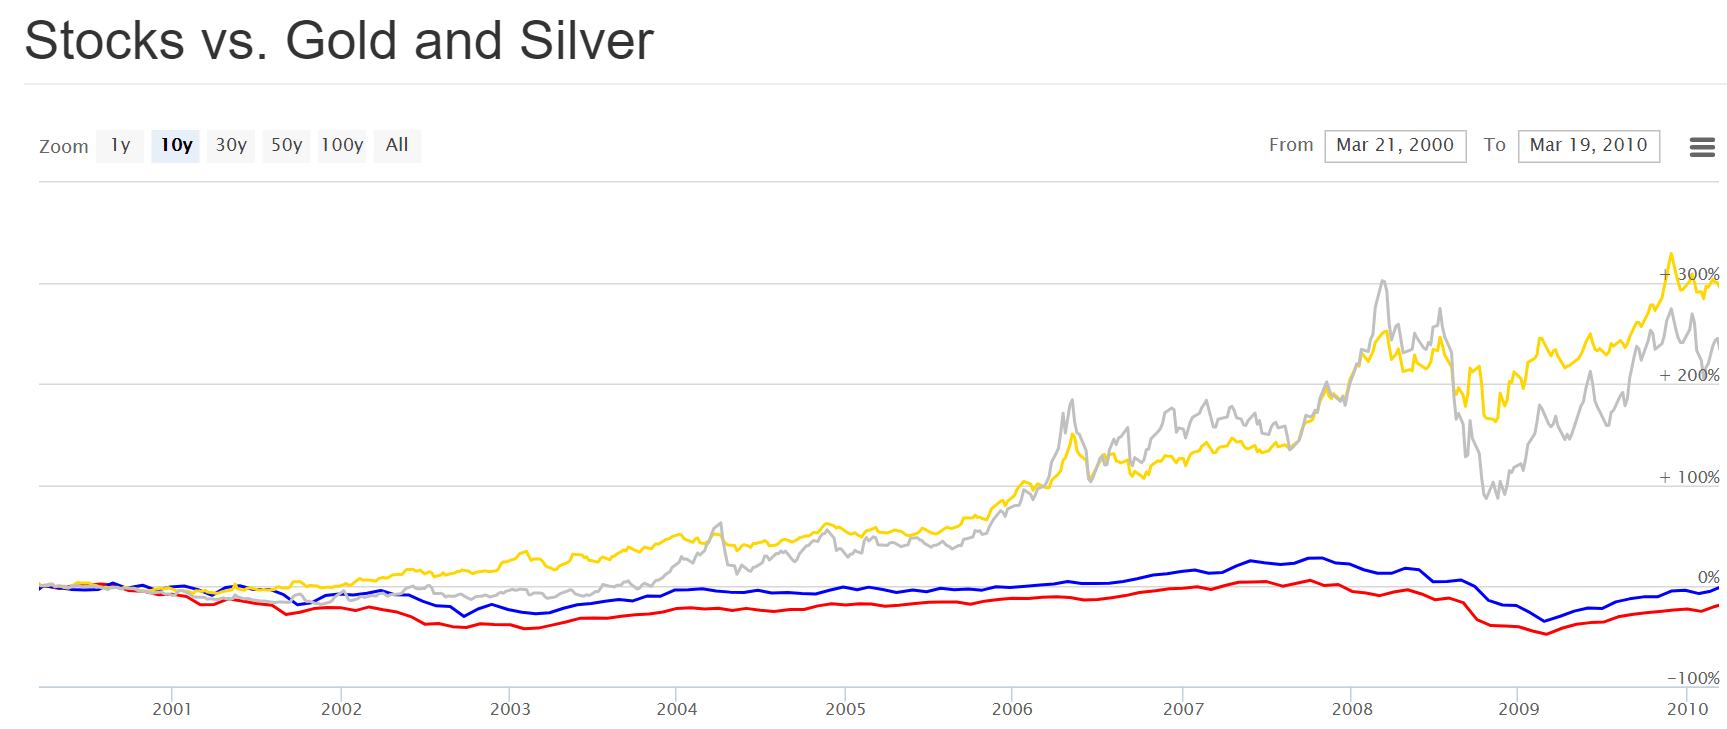 Chart comparing the performance of Gold and Silver vs Stocks during 2000-2010